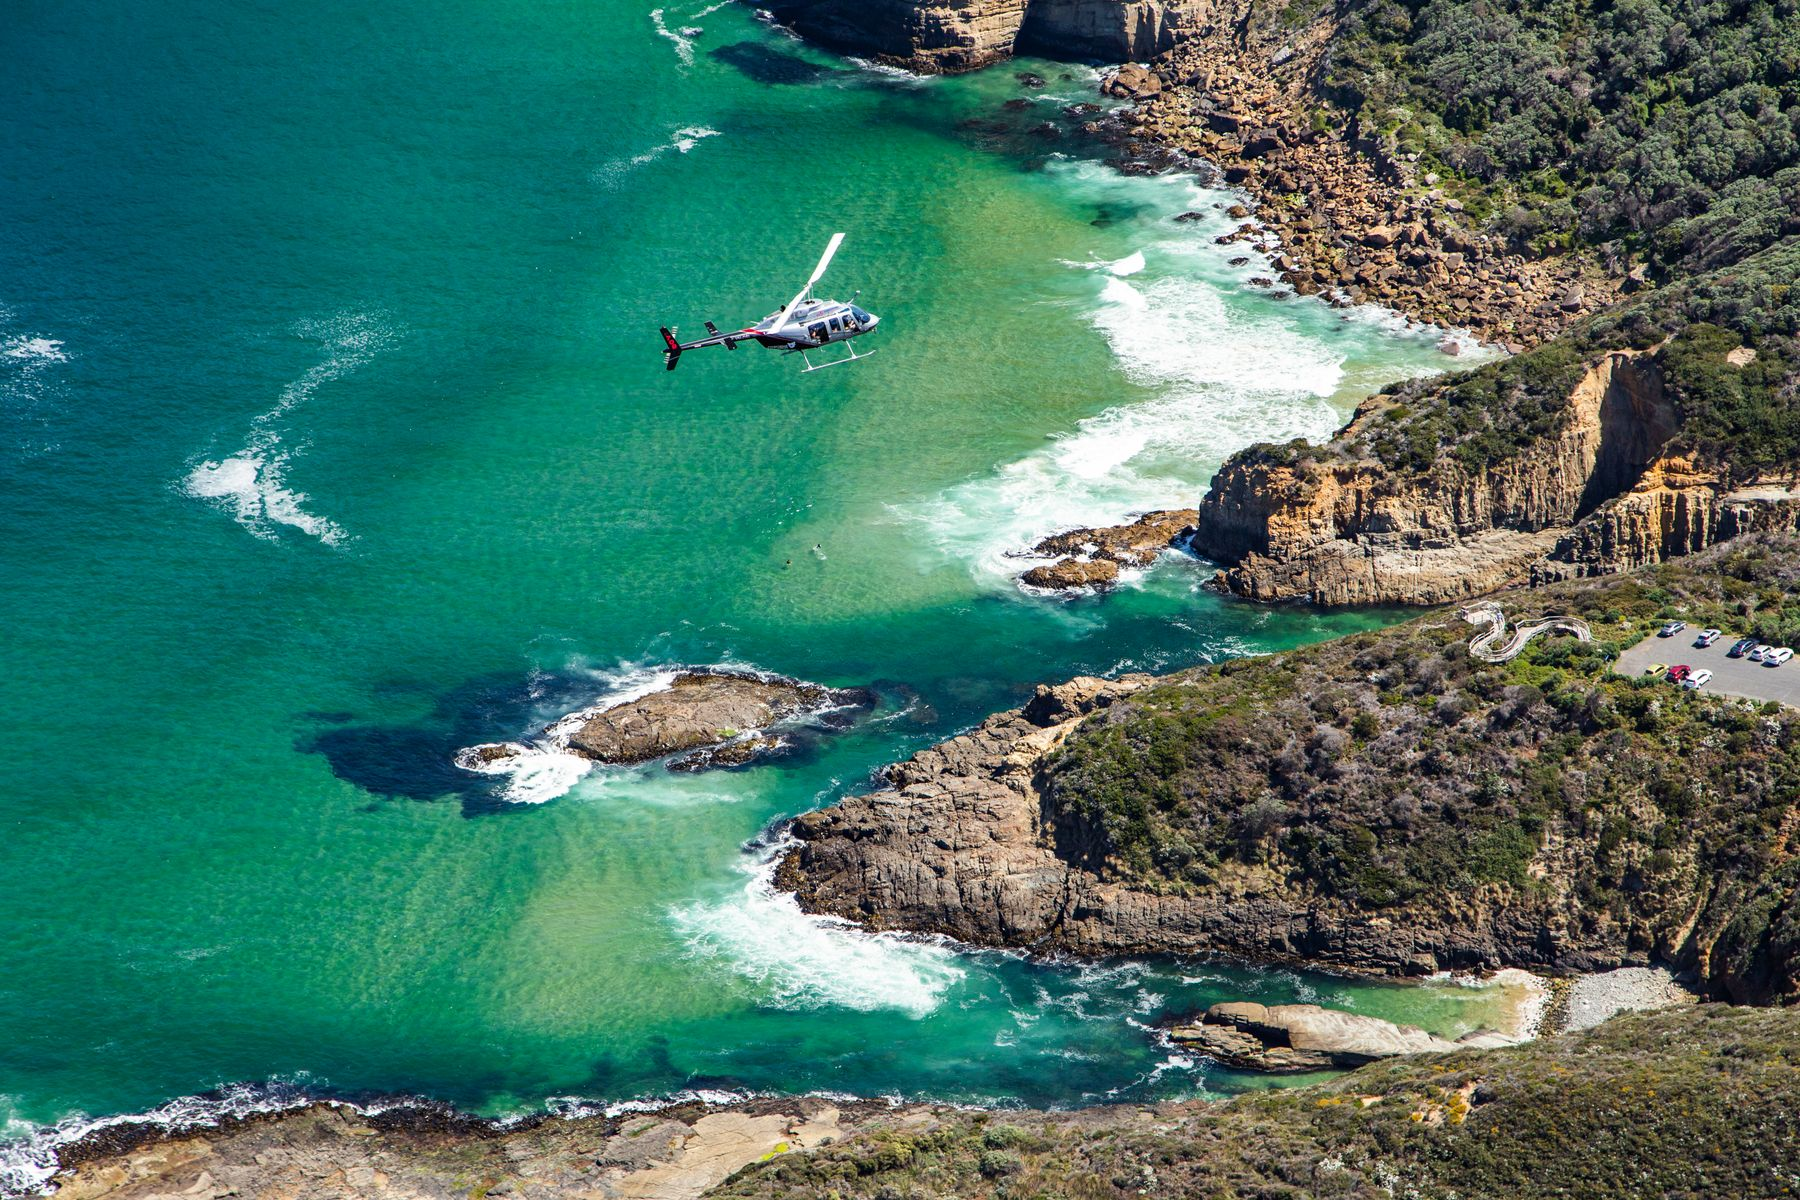 Osborne Heli Tours offer scenic helicopter flights showcasing the dramatic and rugged beauty of Tasmania